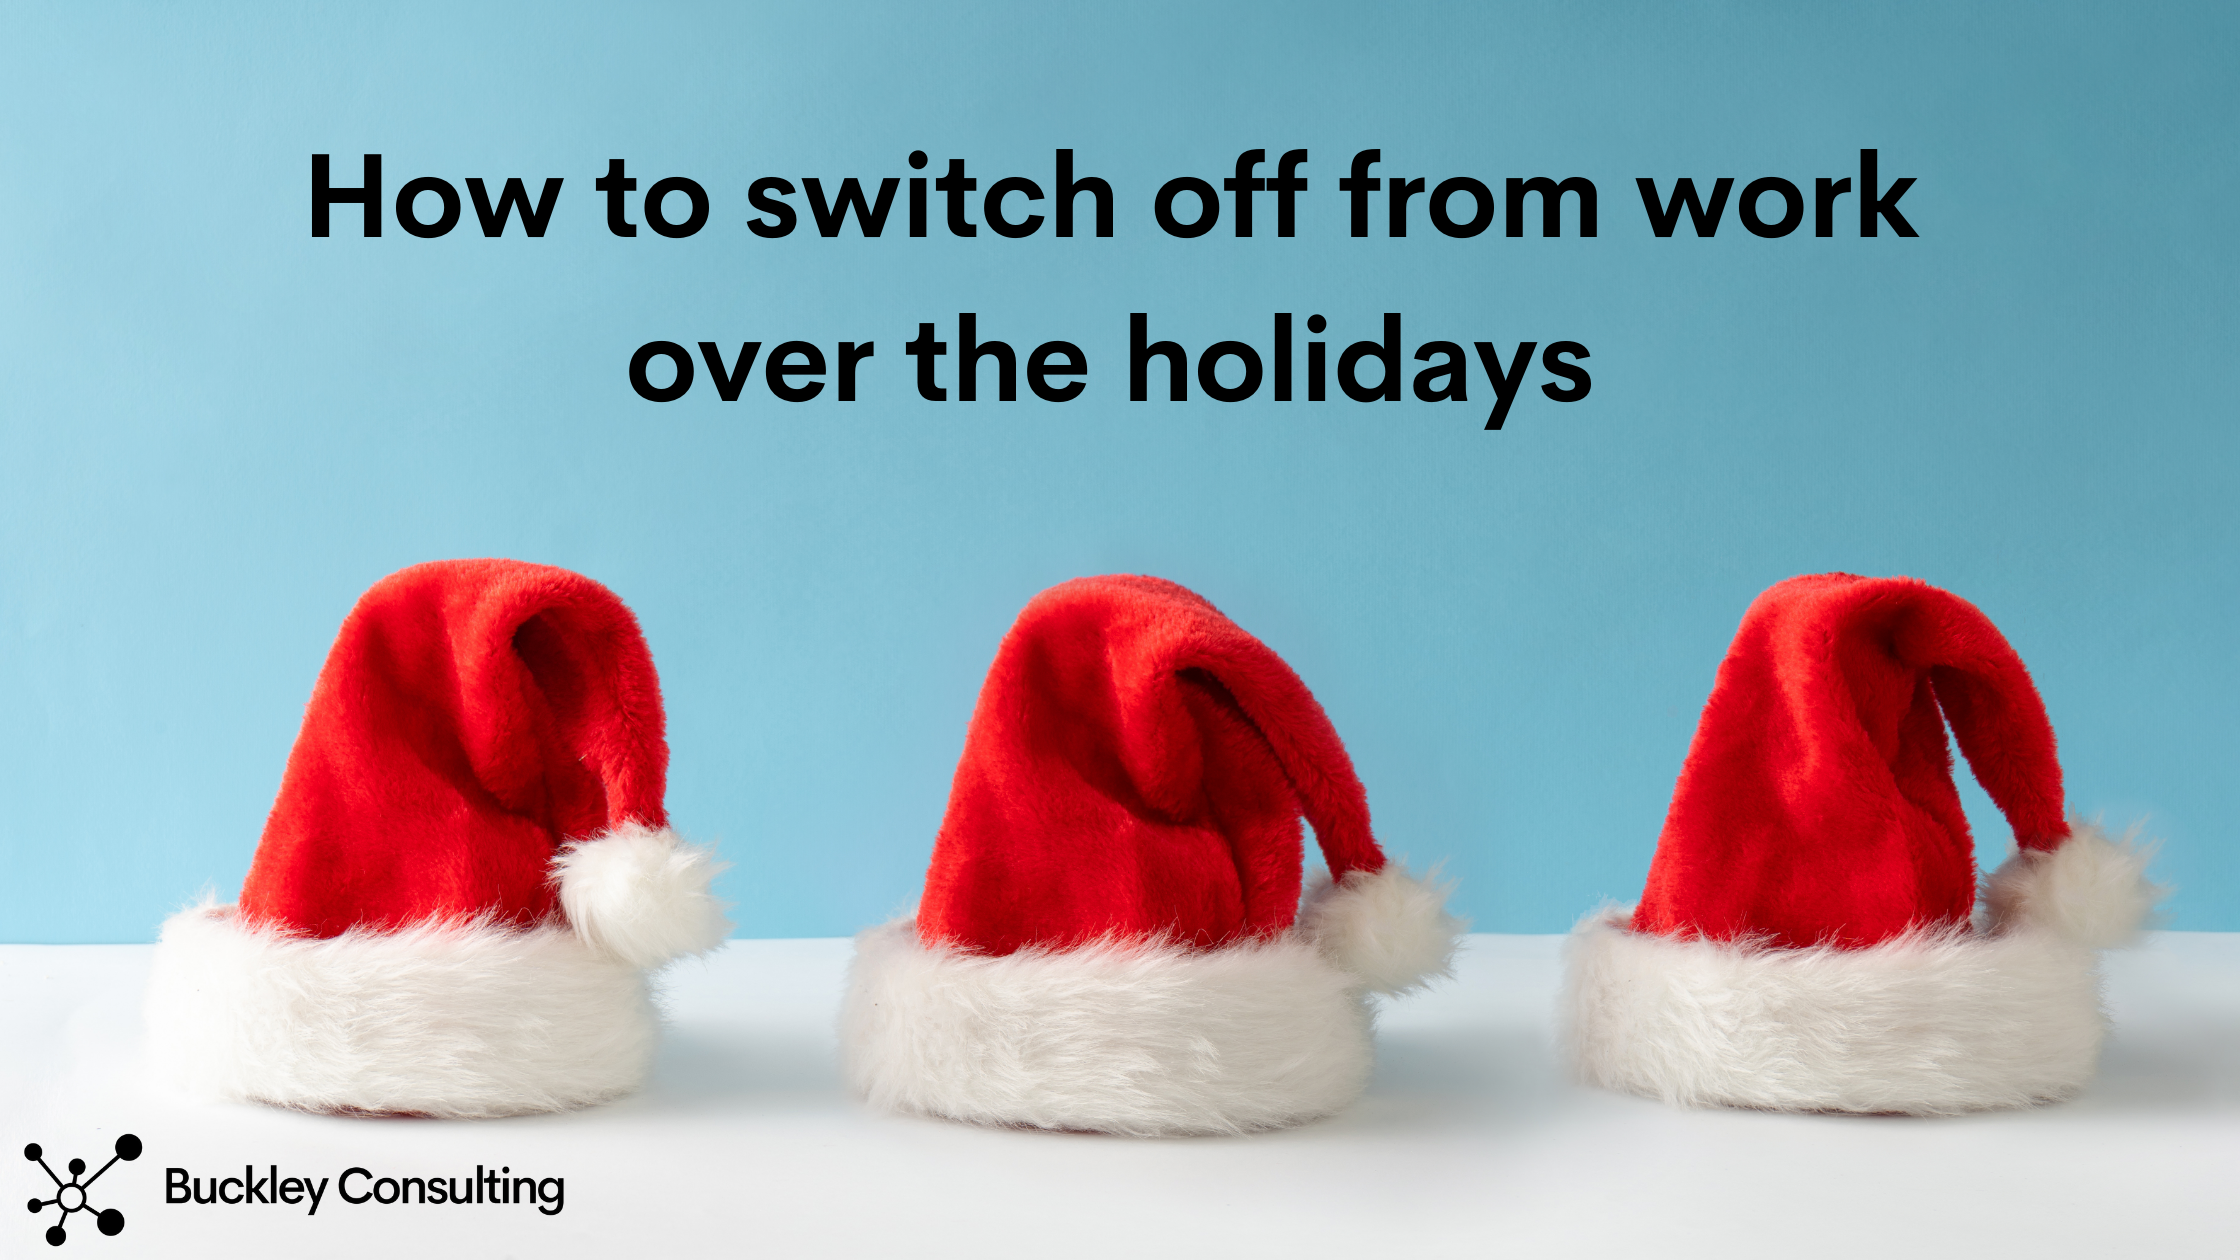 How to switch off from work over the holidays